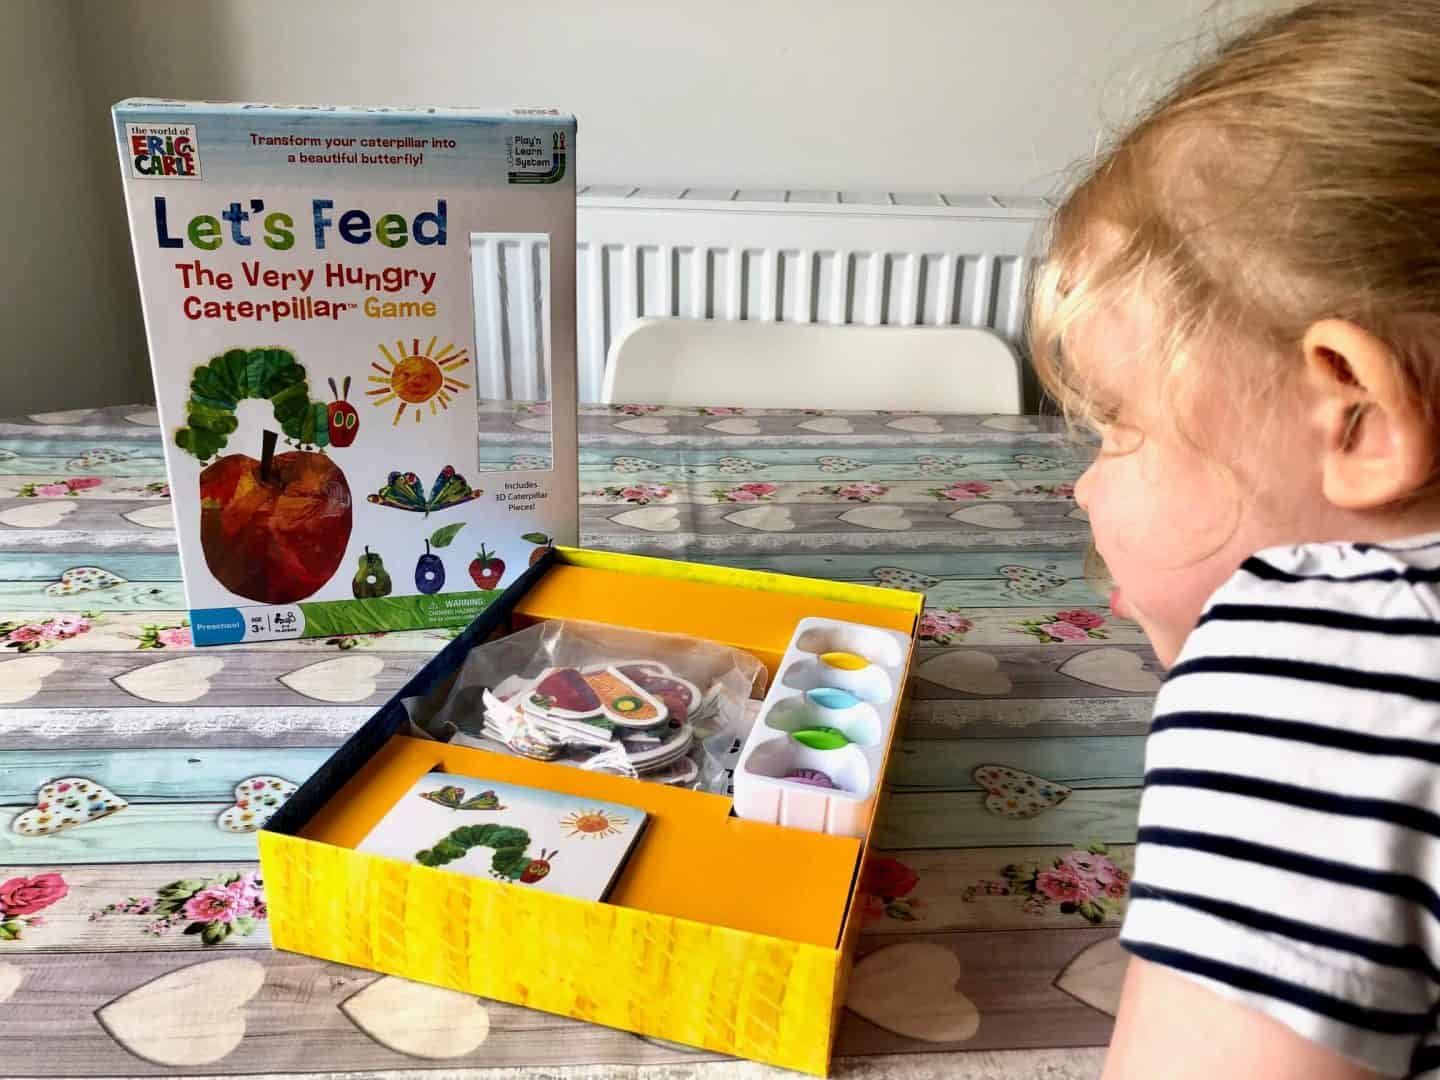 Let's Feed the Very Hungry Caterpillar board game - Pieces in the box